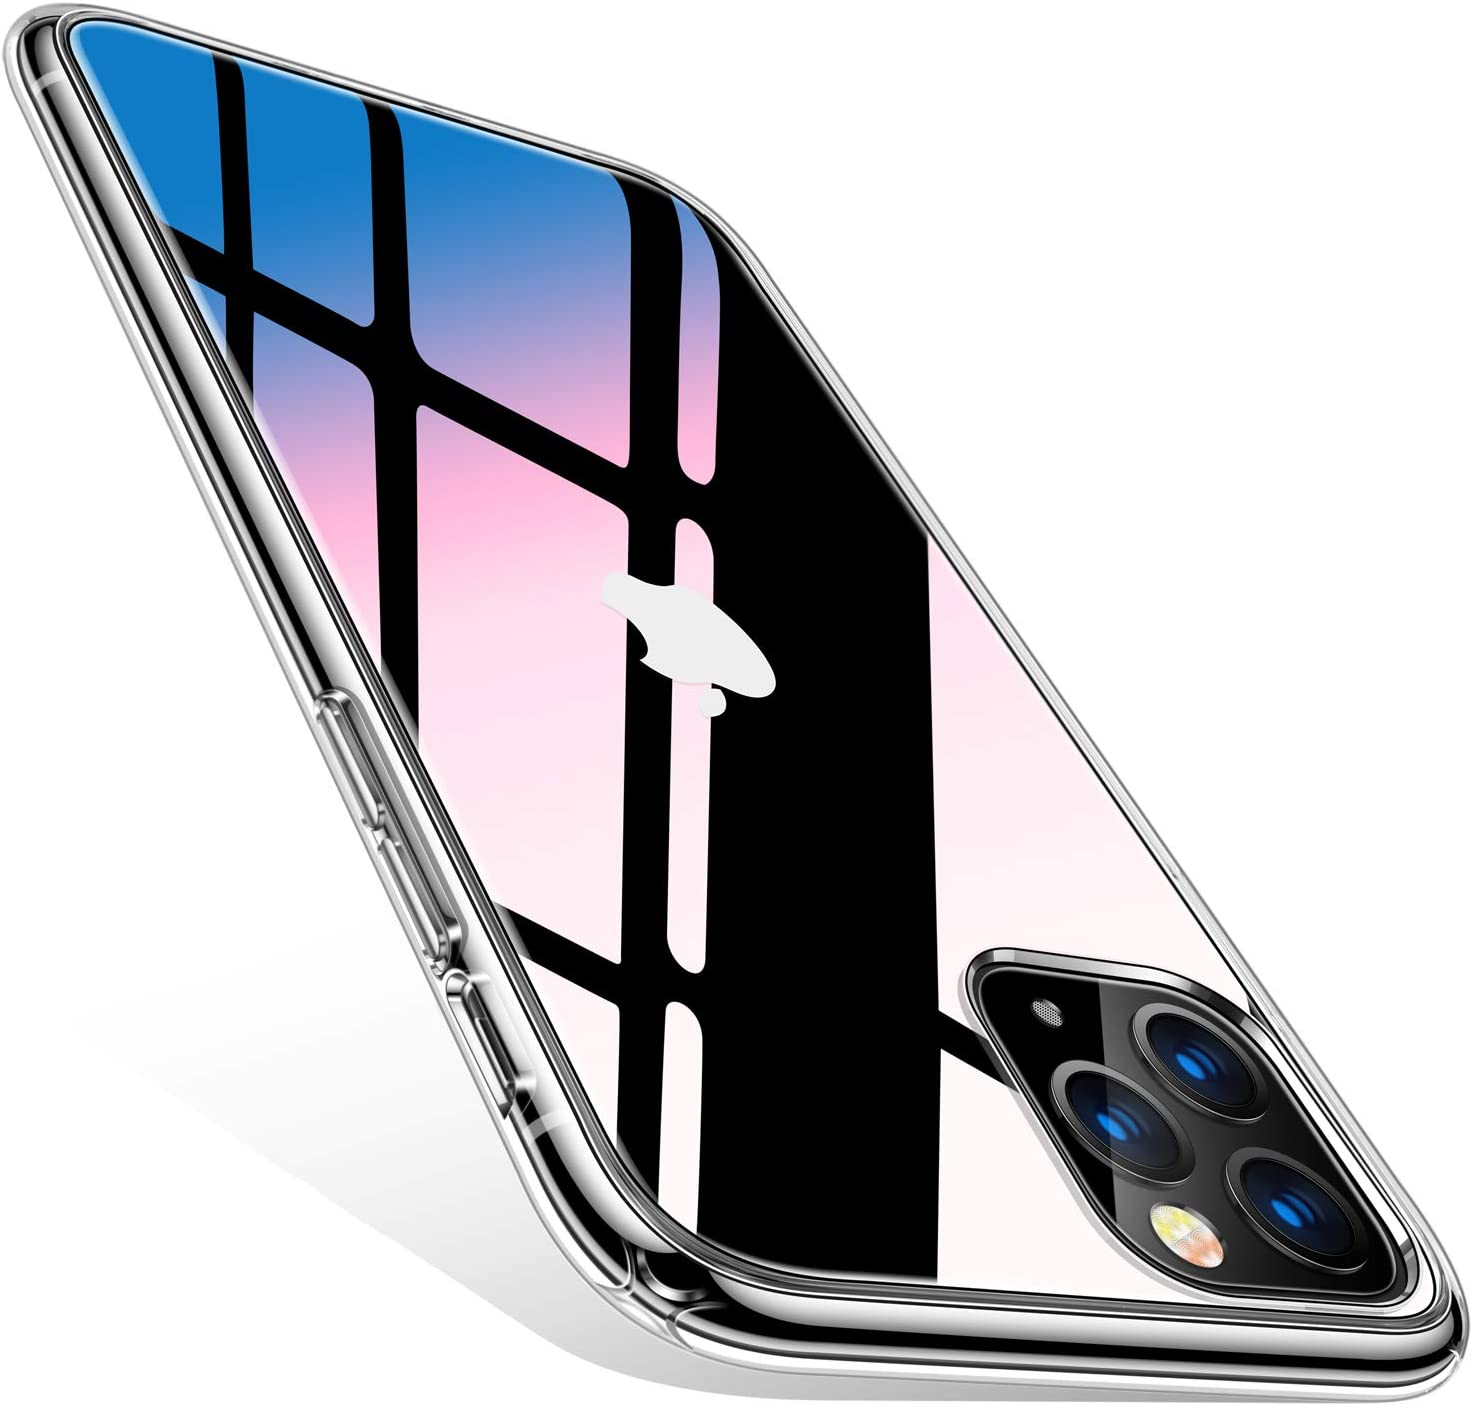 TORRAS Diamonds Clear iPhone 11 Pro Case, [10X Anti-Yellowing] [Shock Absorption] Thin Slim Fit Shockproof Hard PC Back & Soft TPU Bumper Phone Cover Designed for iPhone 11 Pro Cases, Transparent